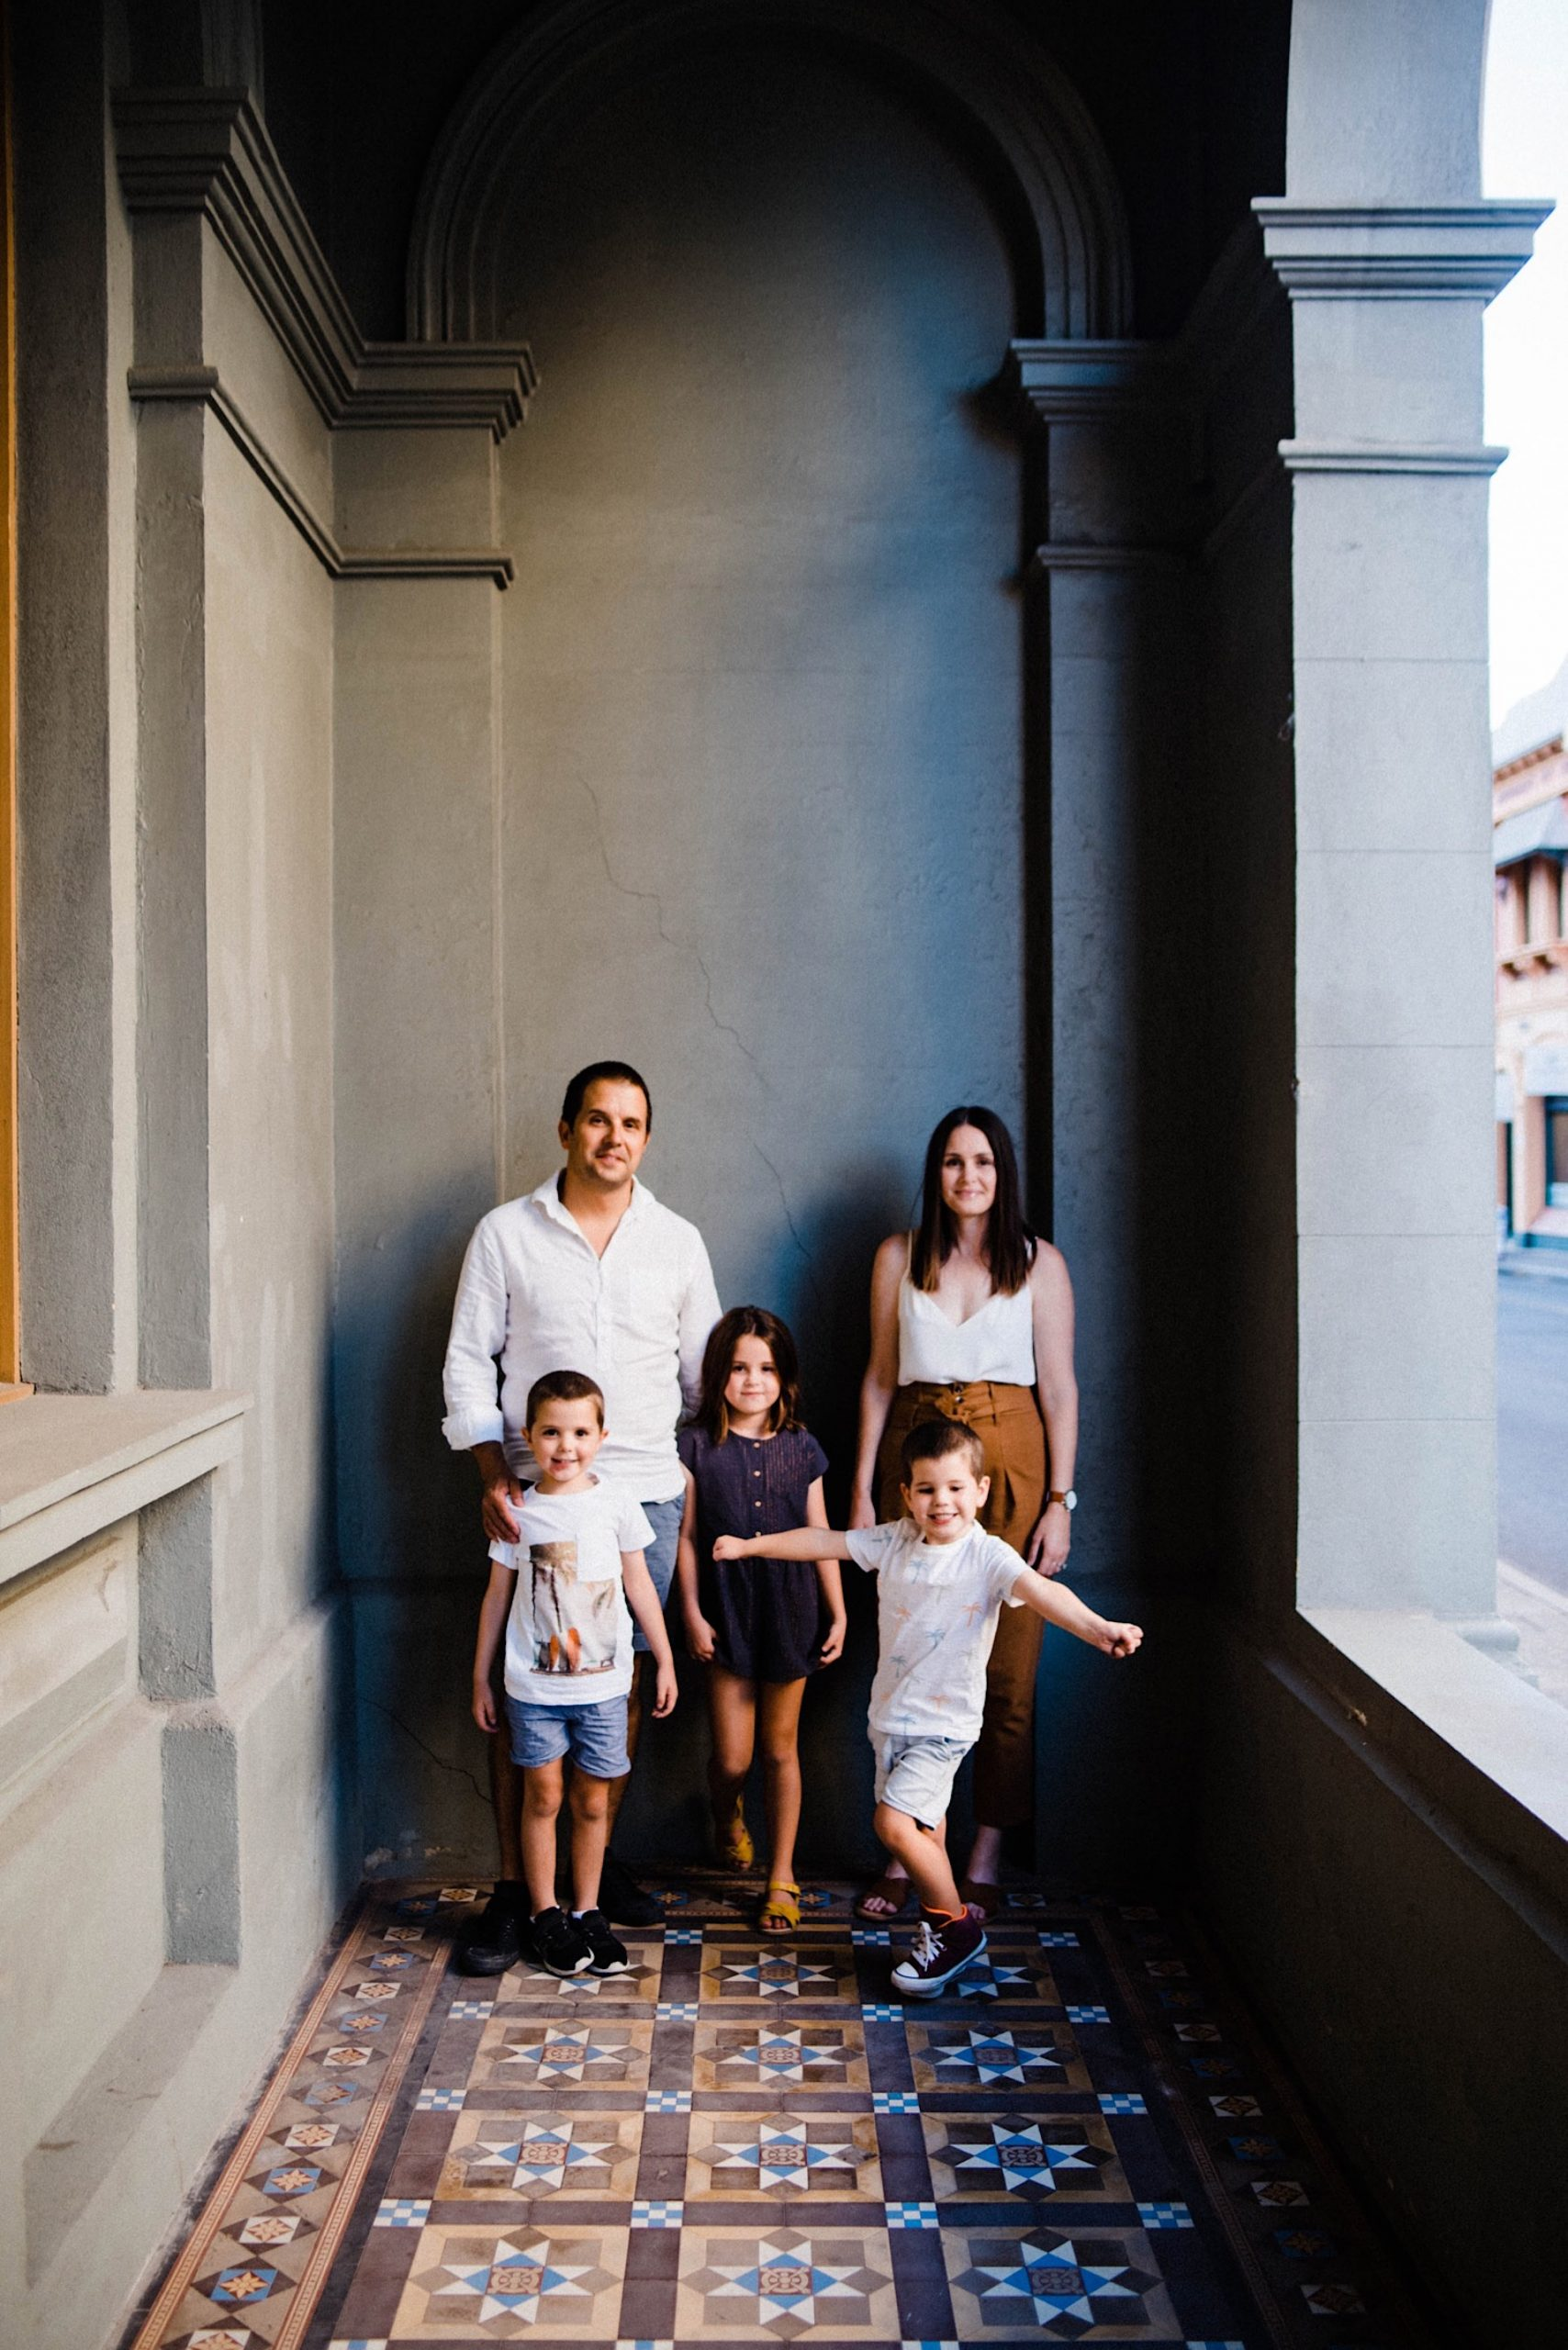 A portrait-oriented family portrait - the family of 5 are standing in a portico with dark grey-blue walls and patterned tiled floors.